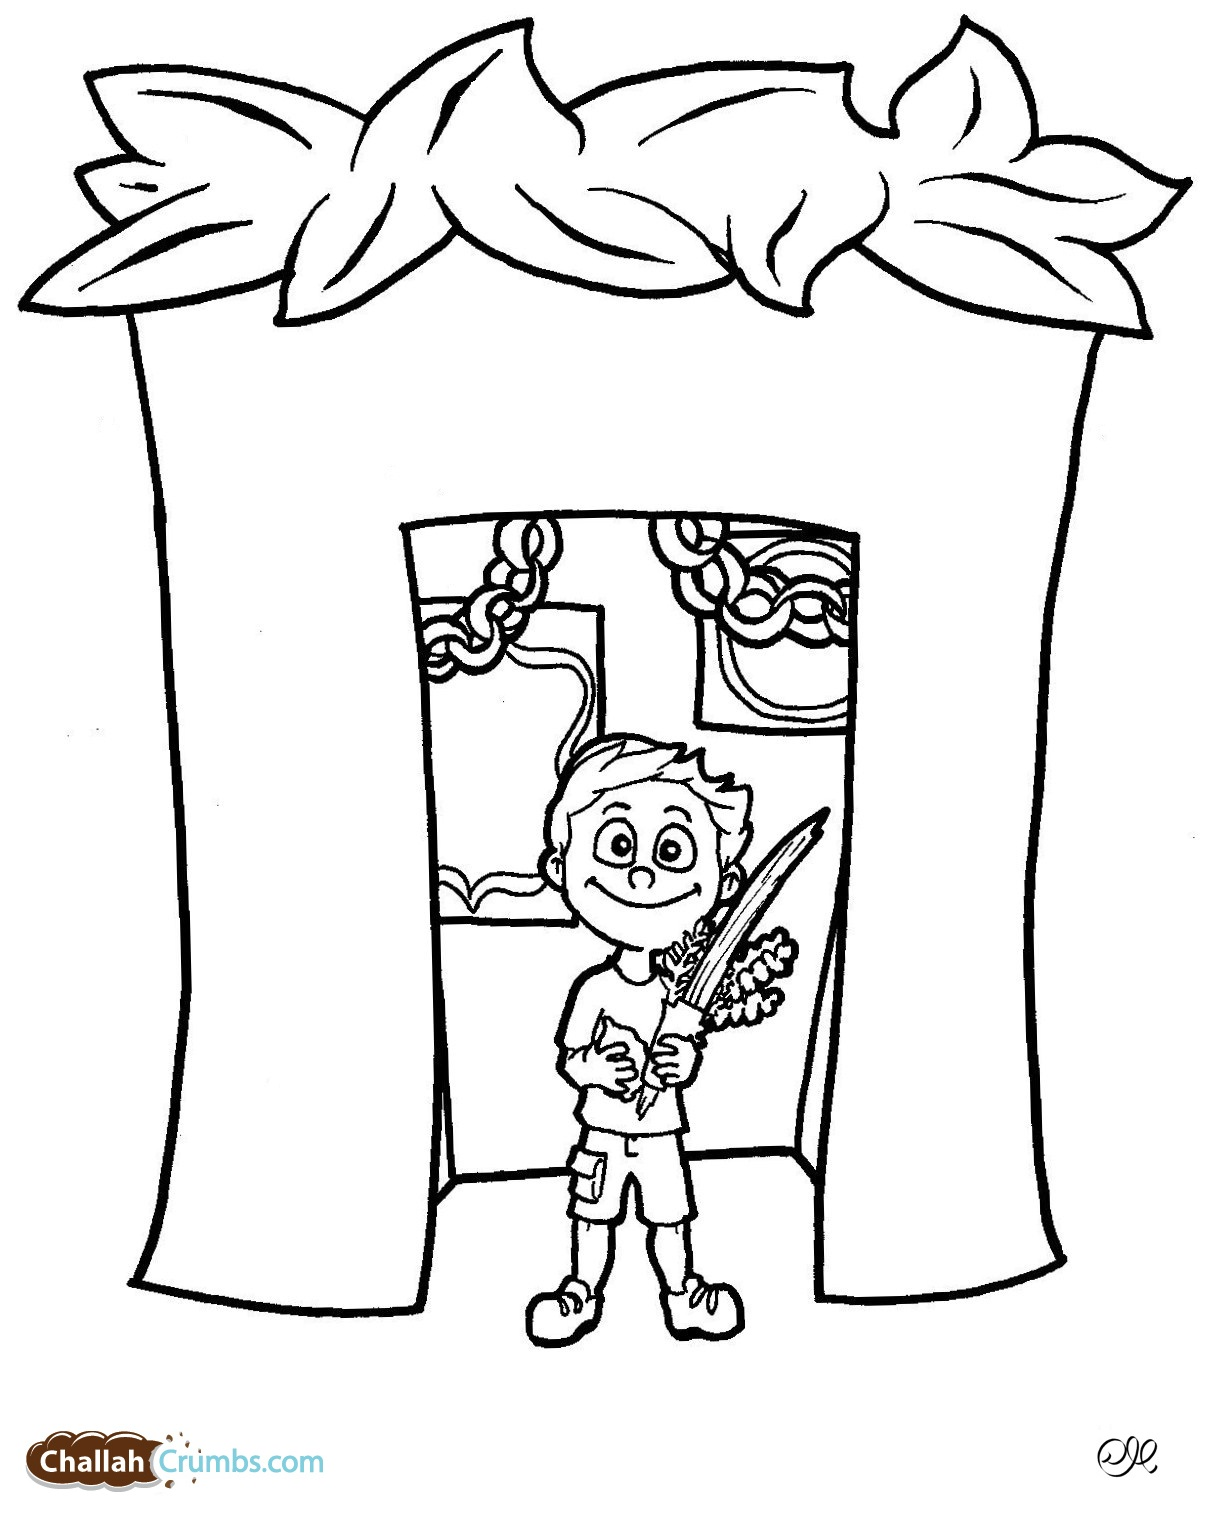 lulav and etrog picture image result for shake lulav cute coloring pages picture and lulav etrog